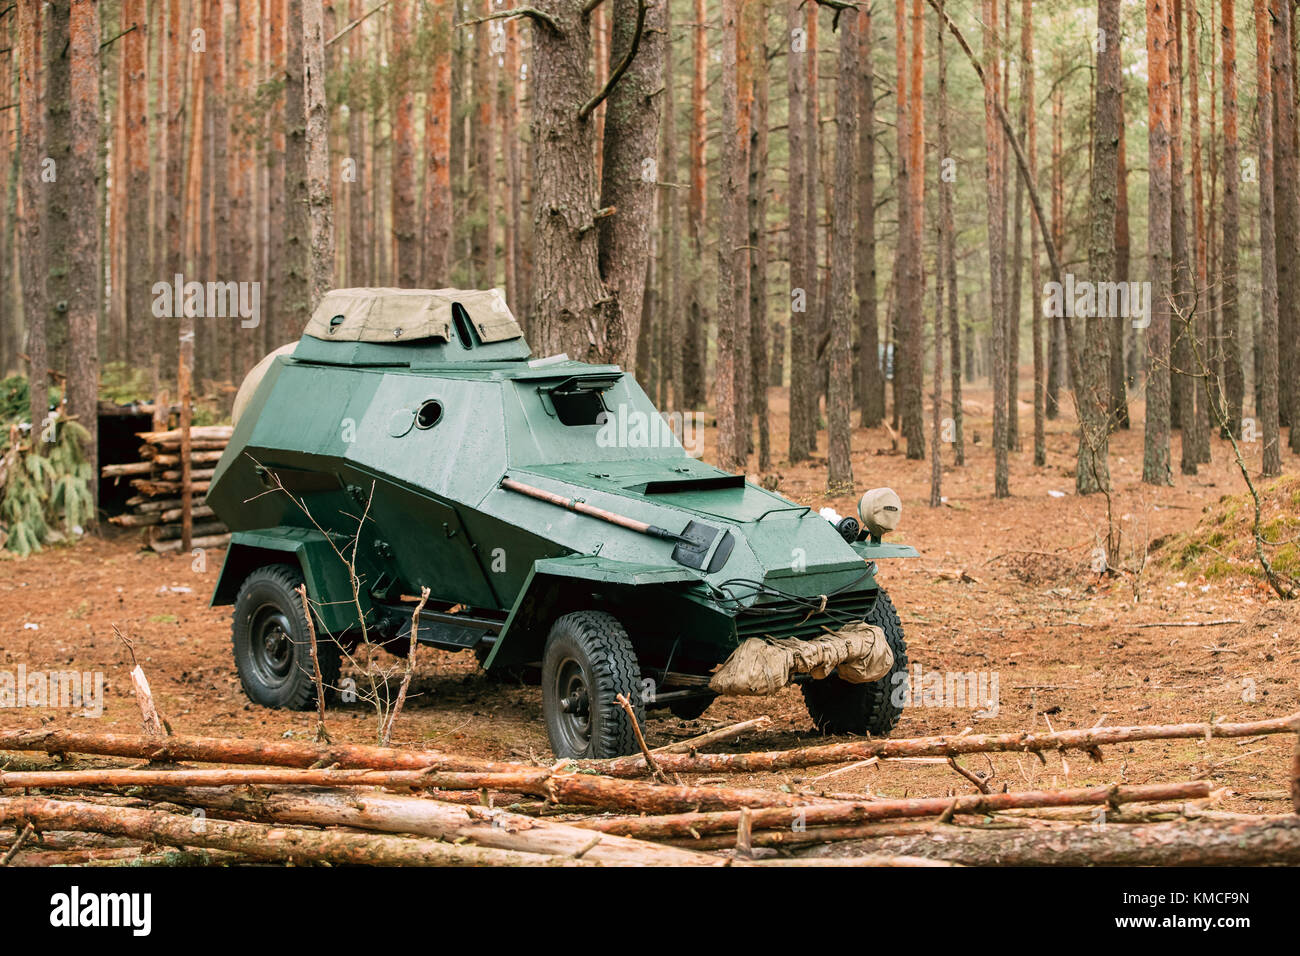 Russian Armored Soviet Scout Car Ba 64 Of World War Ii In Autumn Stock Photo Alamy